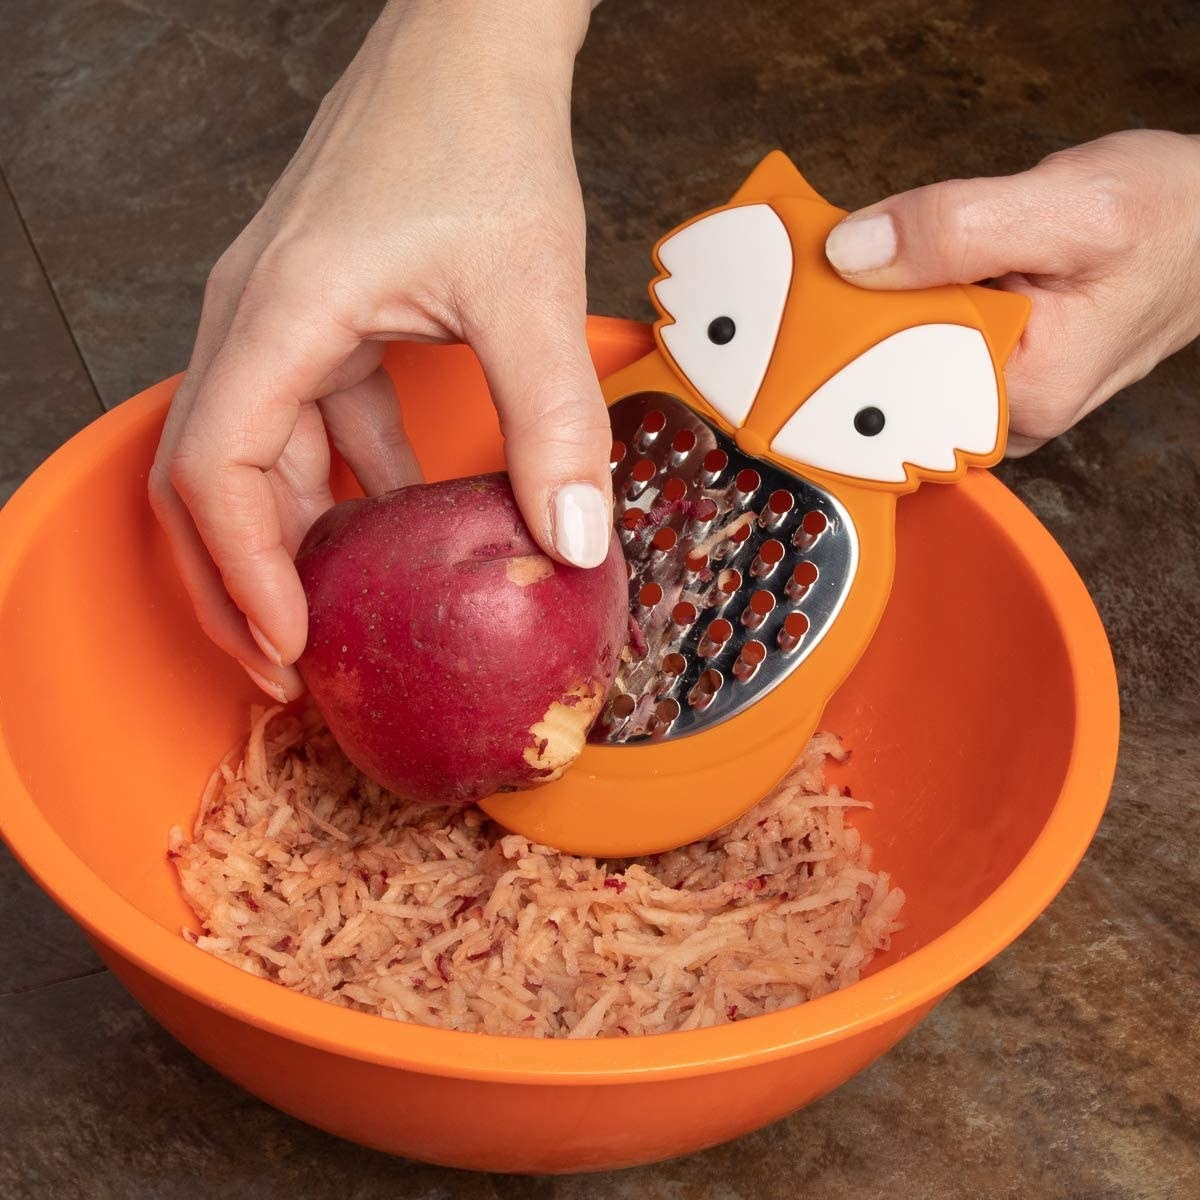 A person grating an apple into a bowl with a small grater with a fox face on the handle